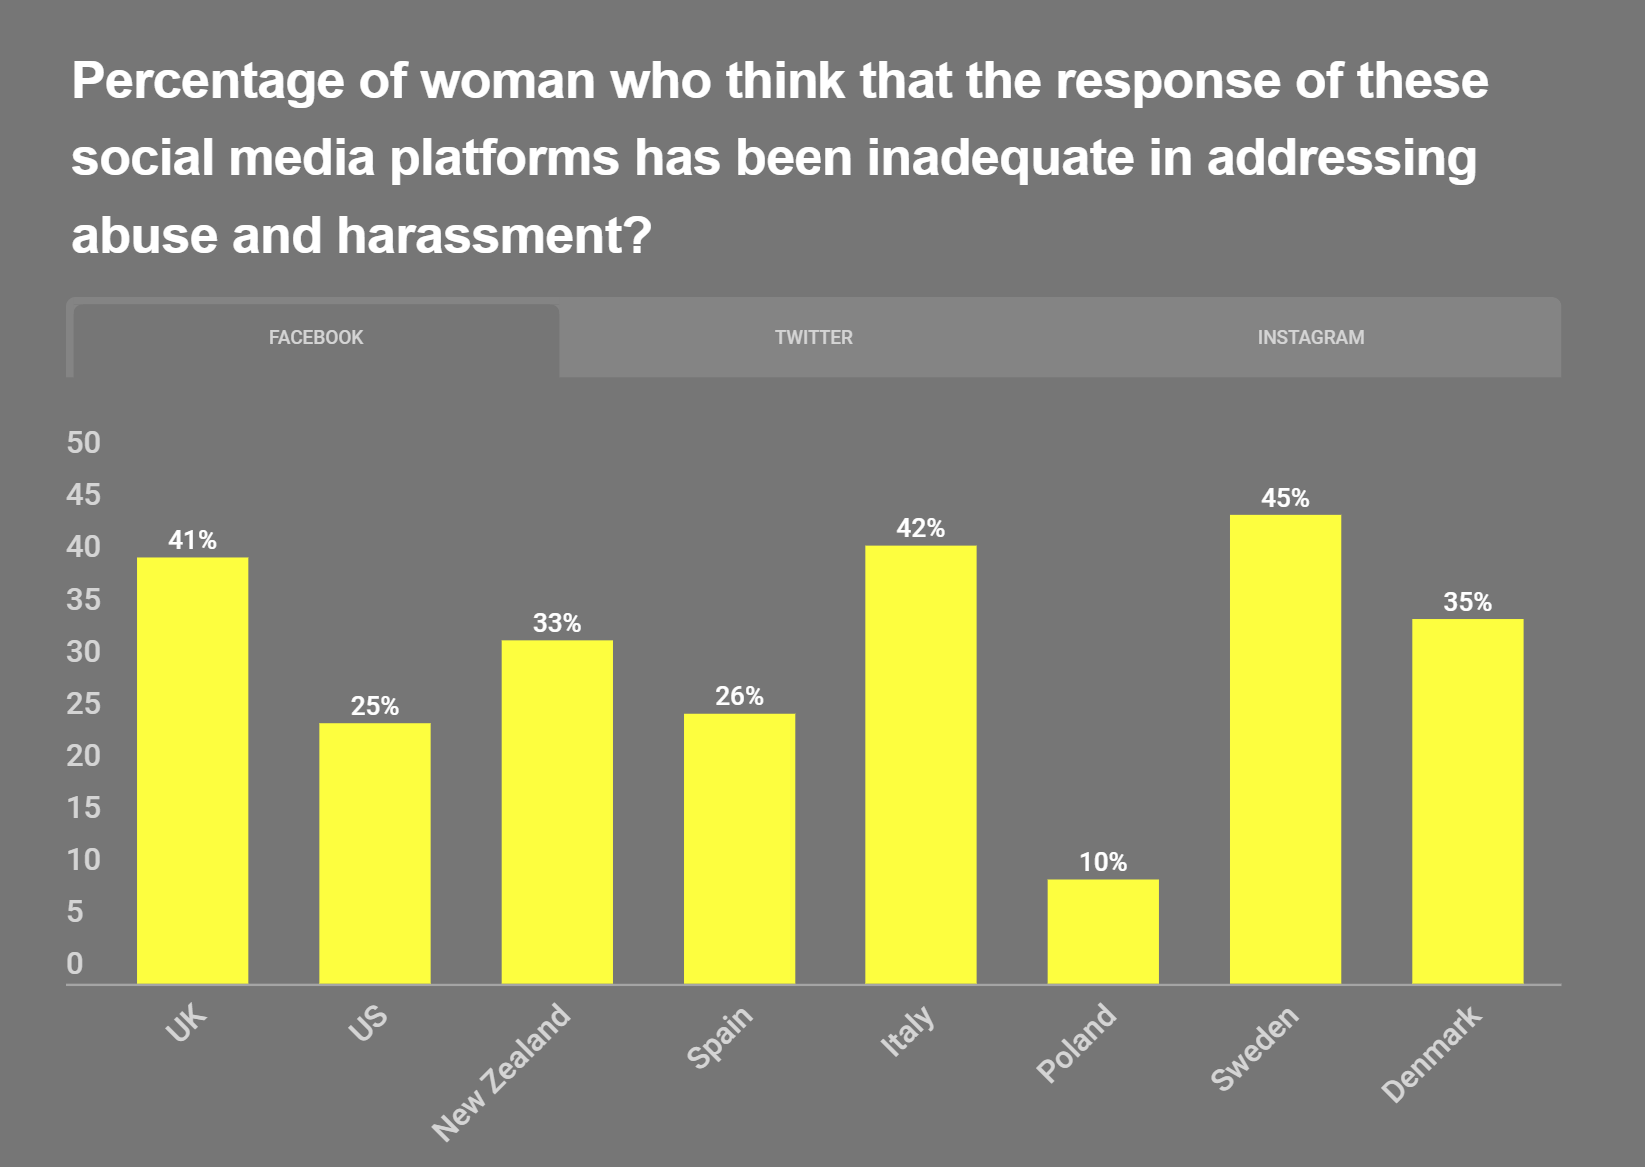 bar chart of data showing percentage of women who think response of social media platforms to abuse has been inadequate